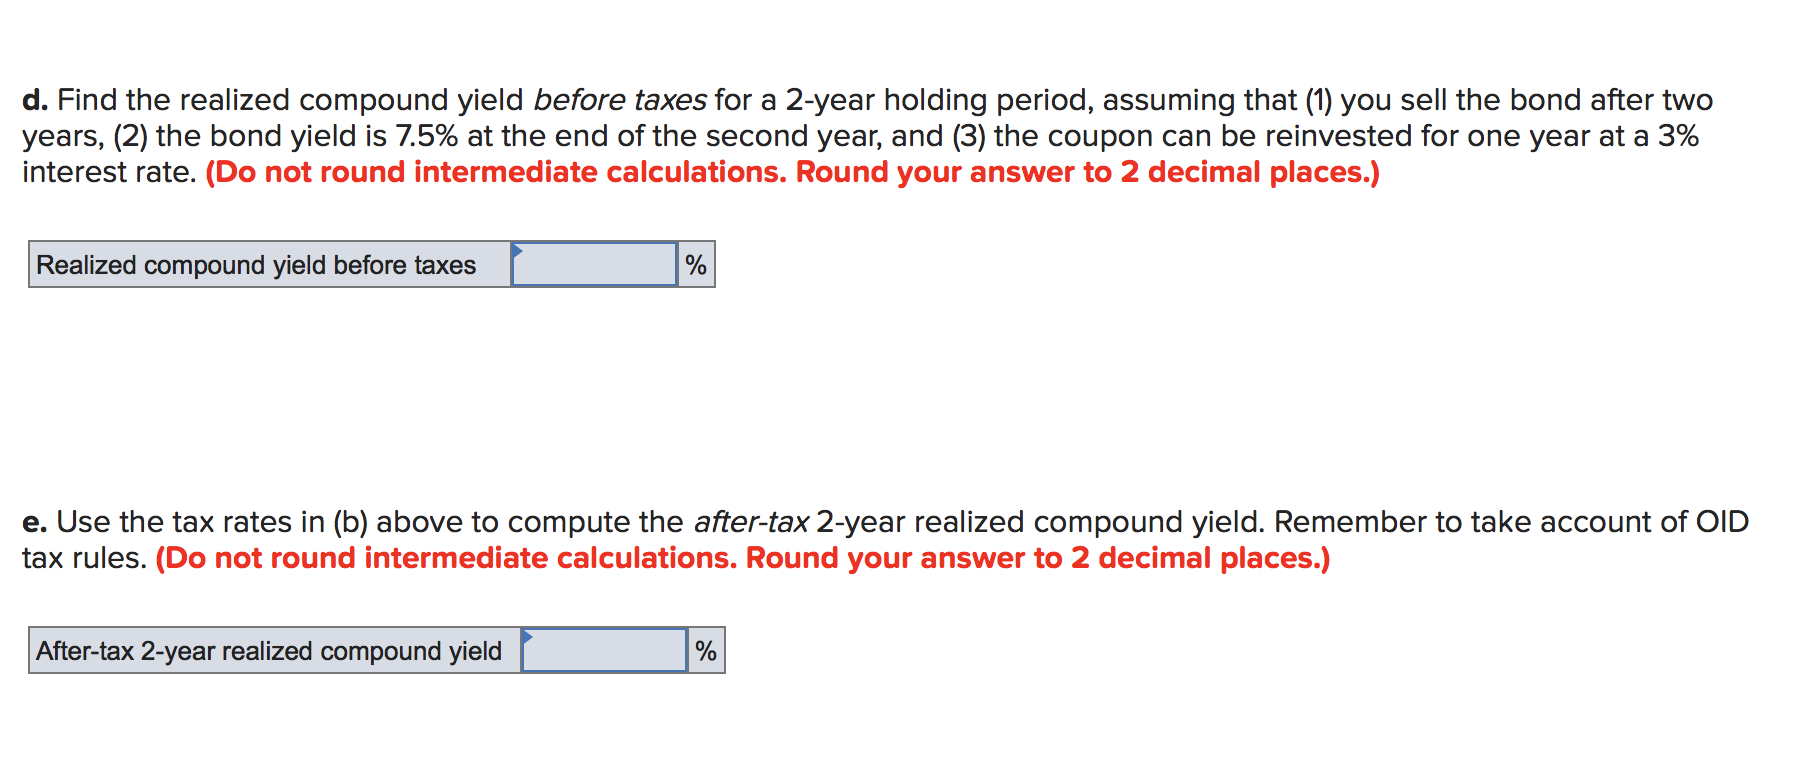 d. Find the realized compound yield before taxes for a 2-year holding period, assuming that (1) you sell the bond after two y